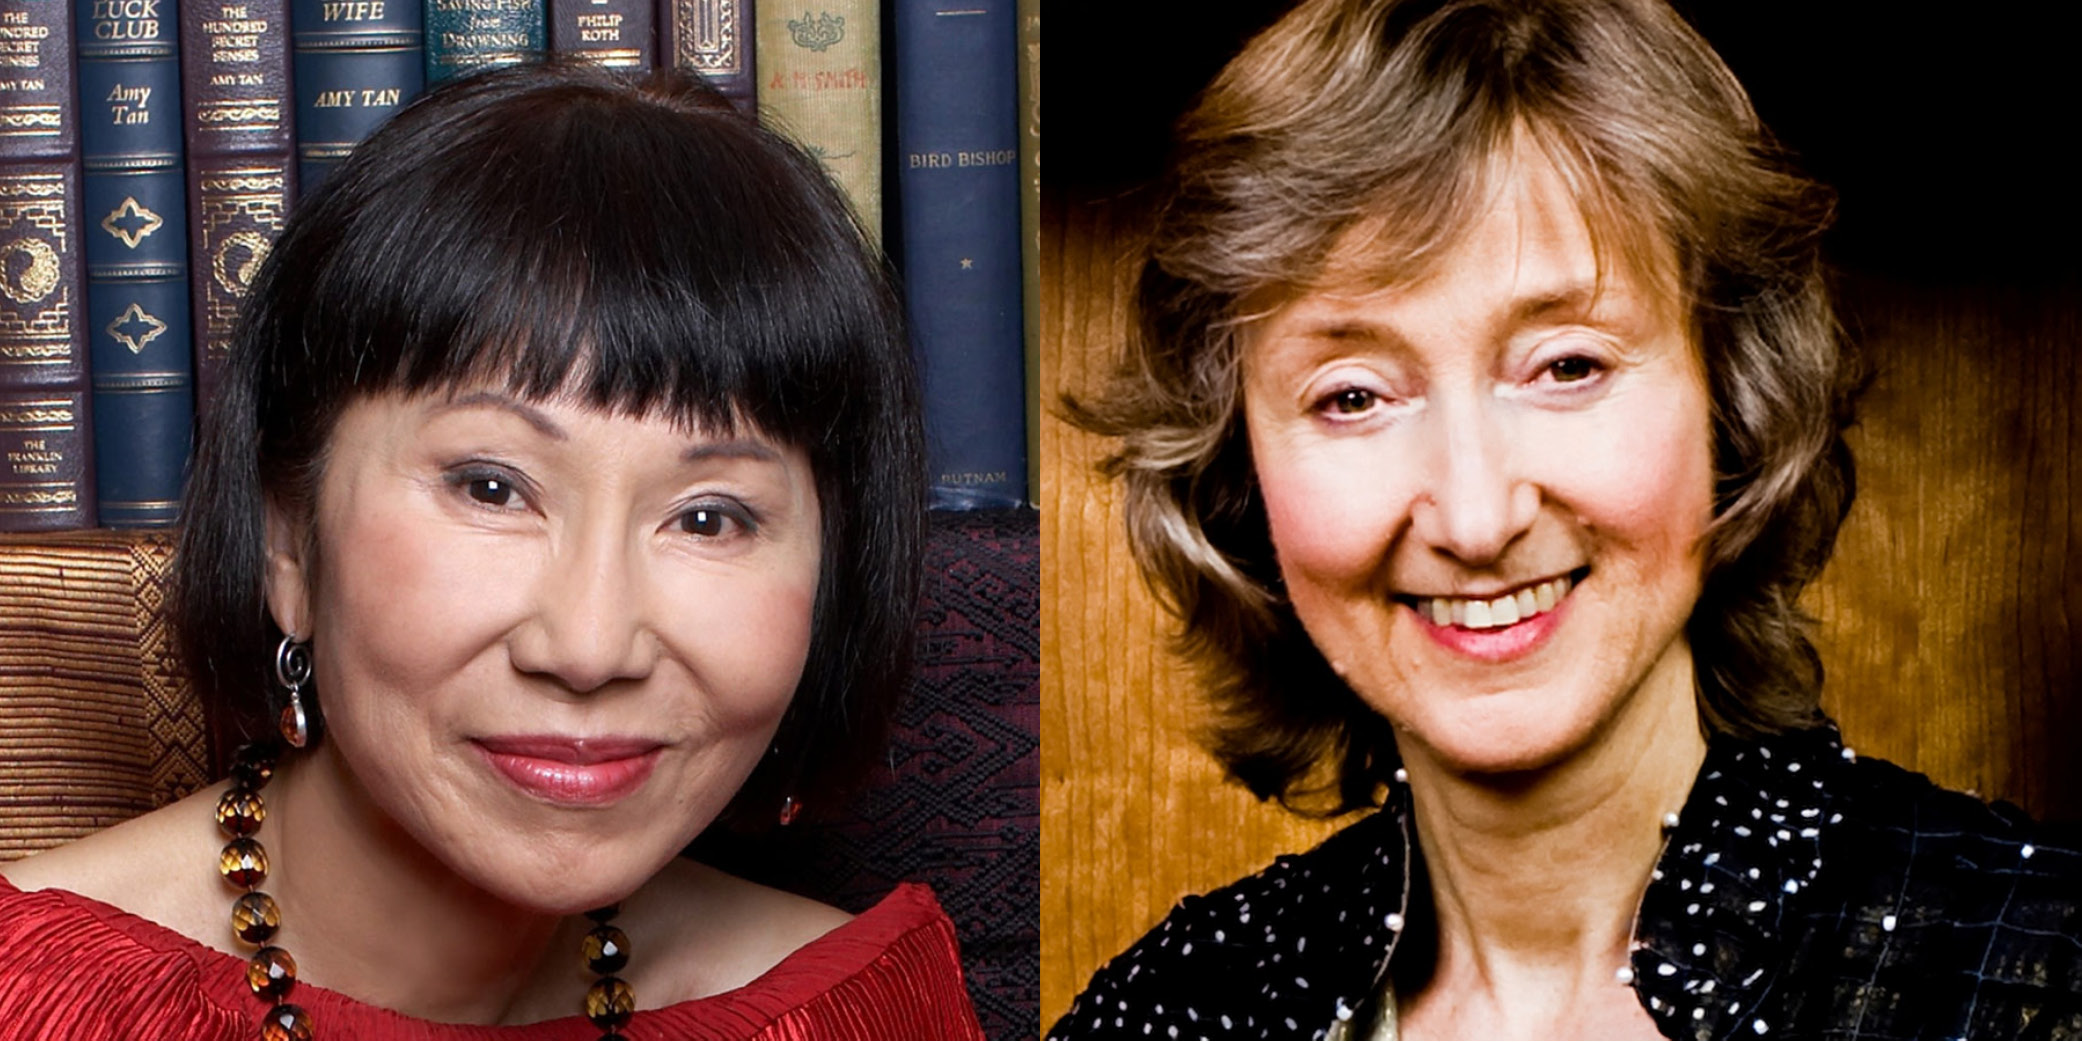 Amy Tan & Deborah Tannen - composite